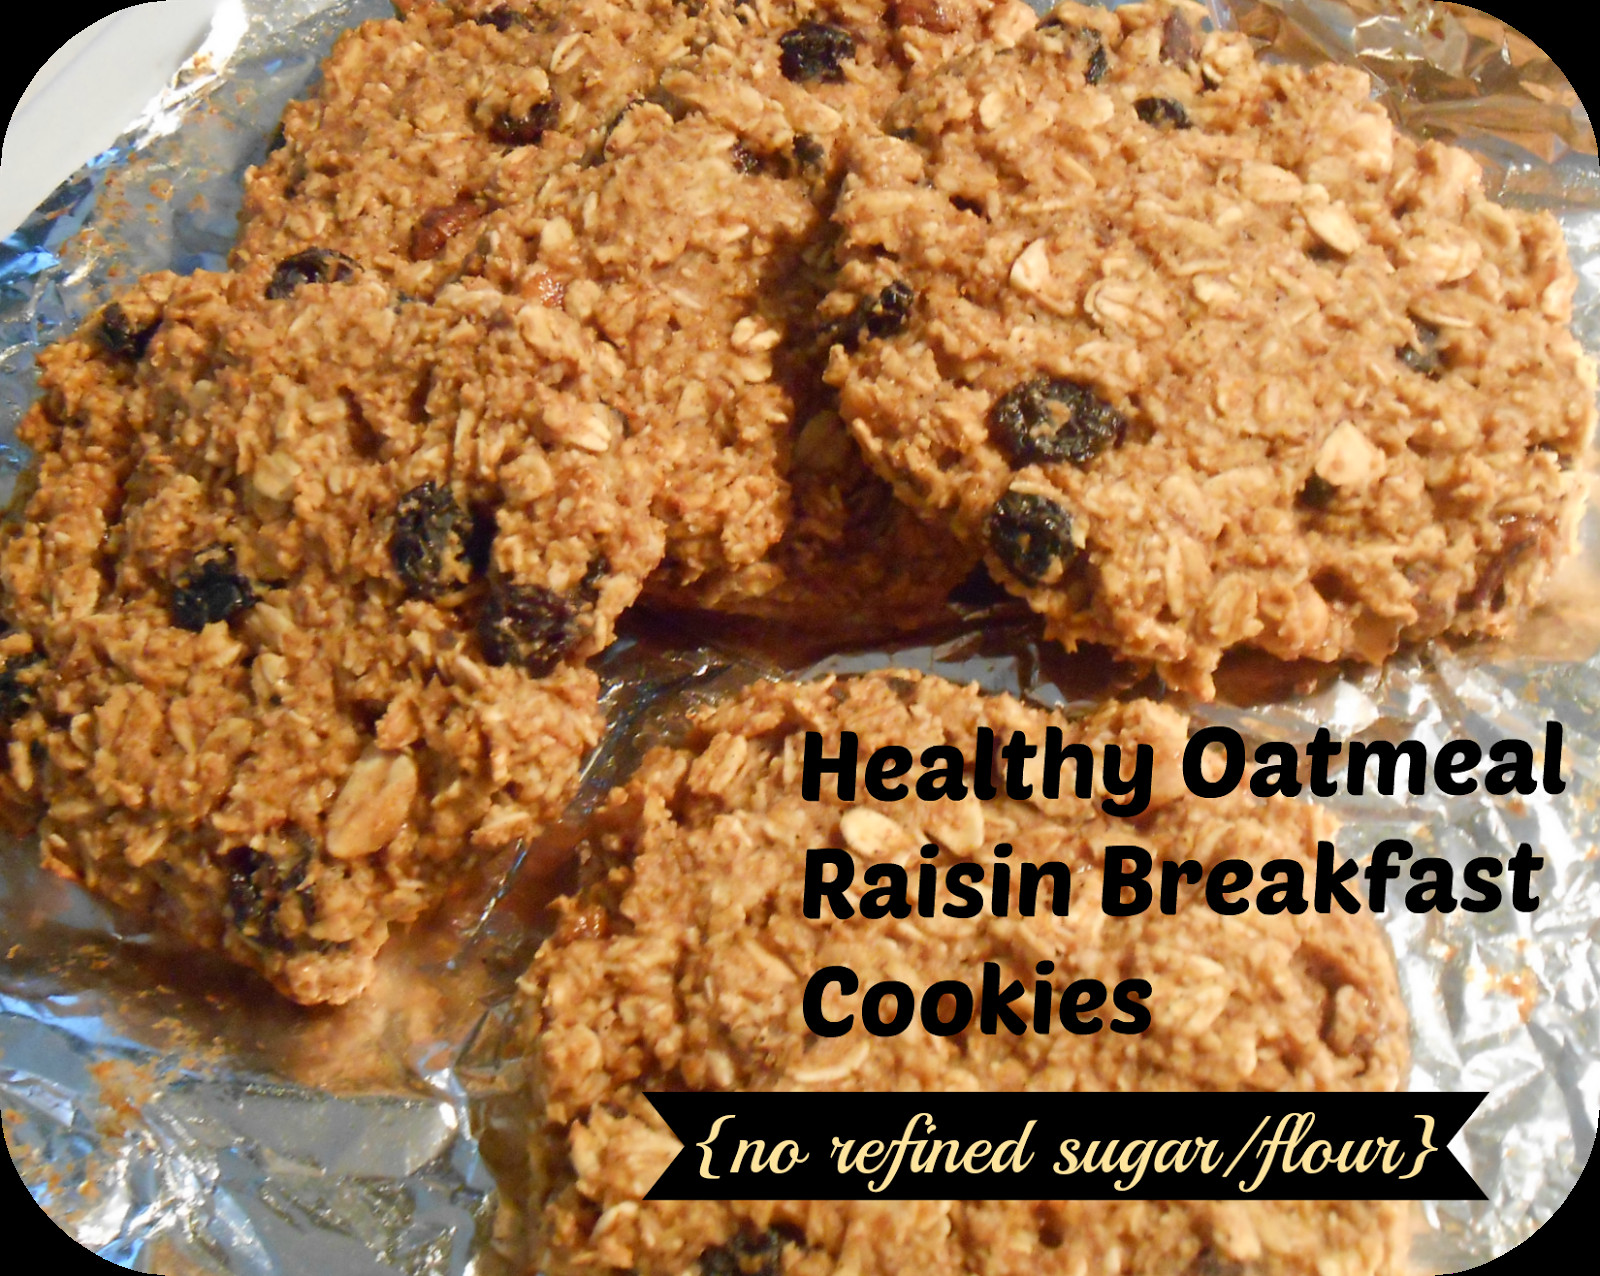 Healthy Oatmeal Cookies No Sugar  Healthy oatmeal raisin breakfast cookies no refined sugar